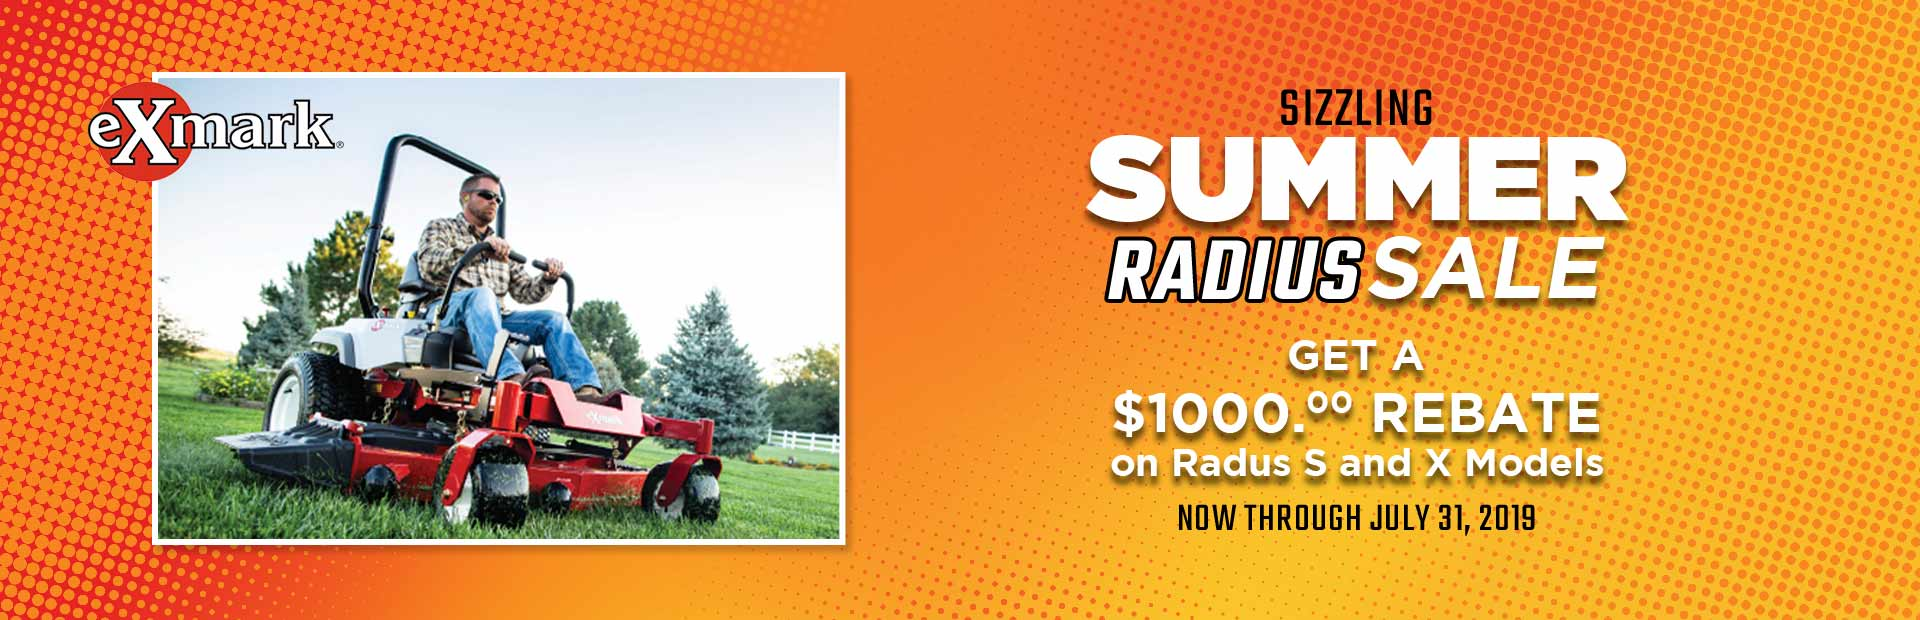 Sizzling Summer Radius Sale. GET A $1,000.00 REBATE on Radius S and X Models!!